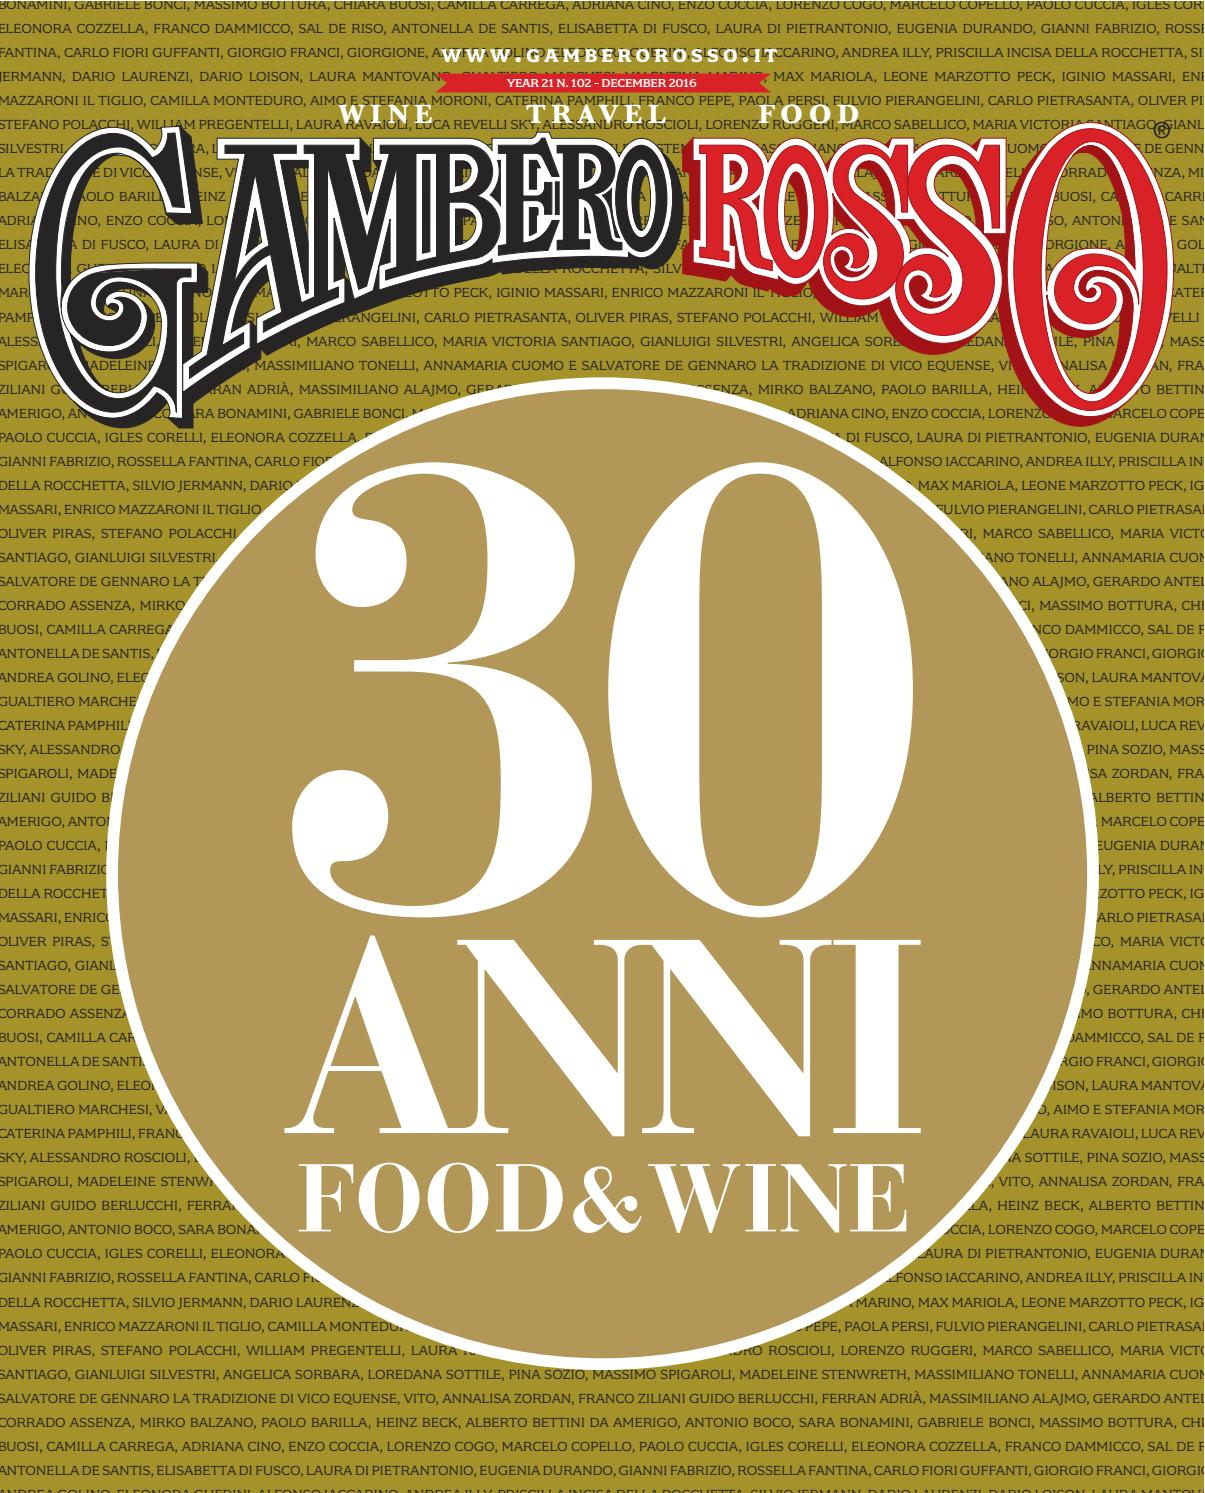 gambero rosso wine travel food by gambero rosso issuu